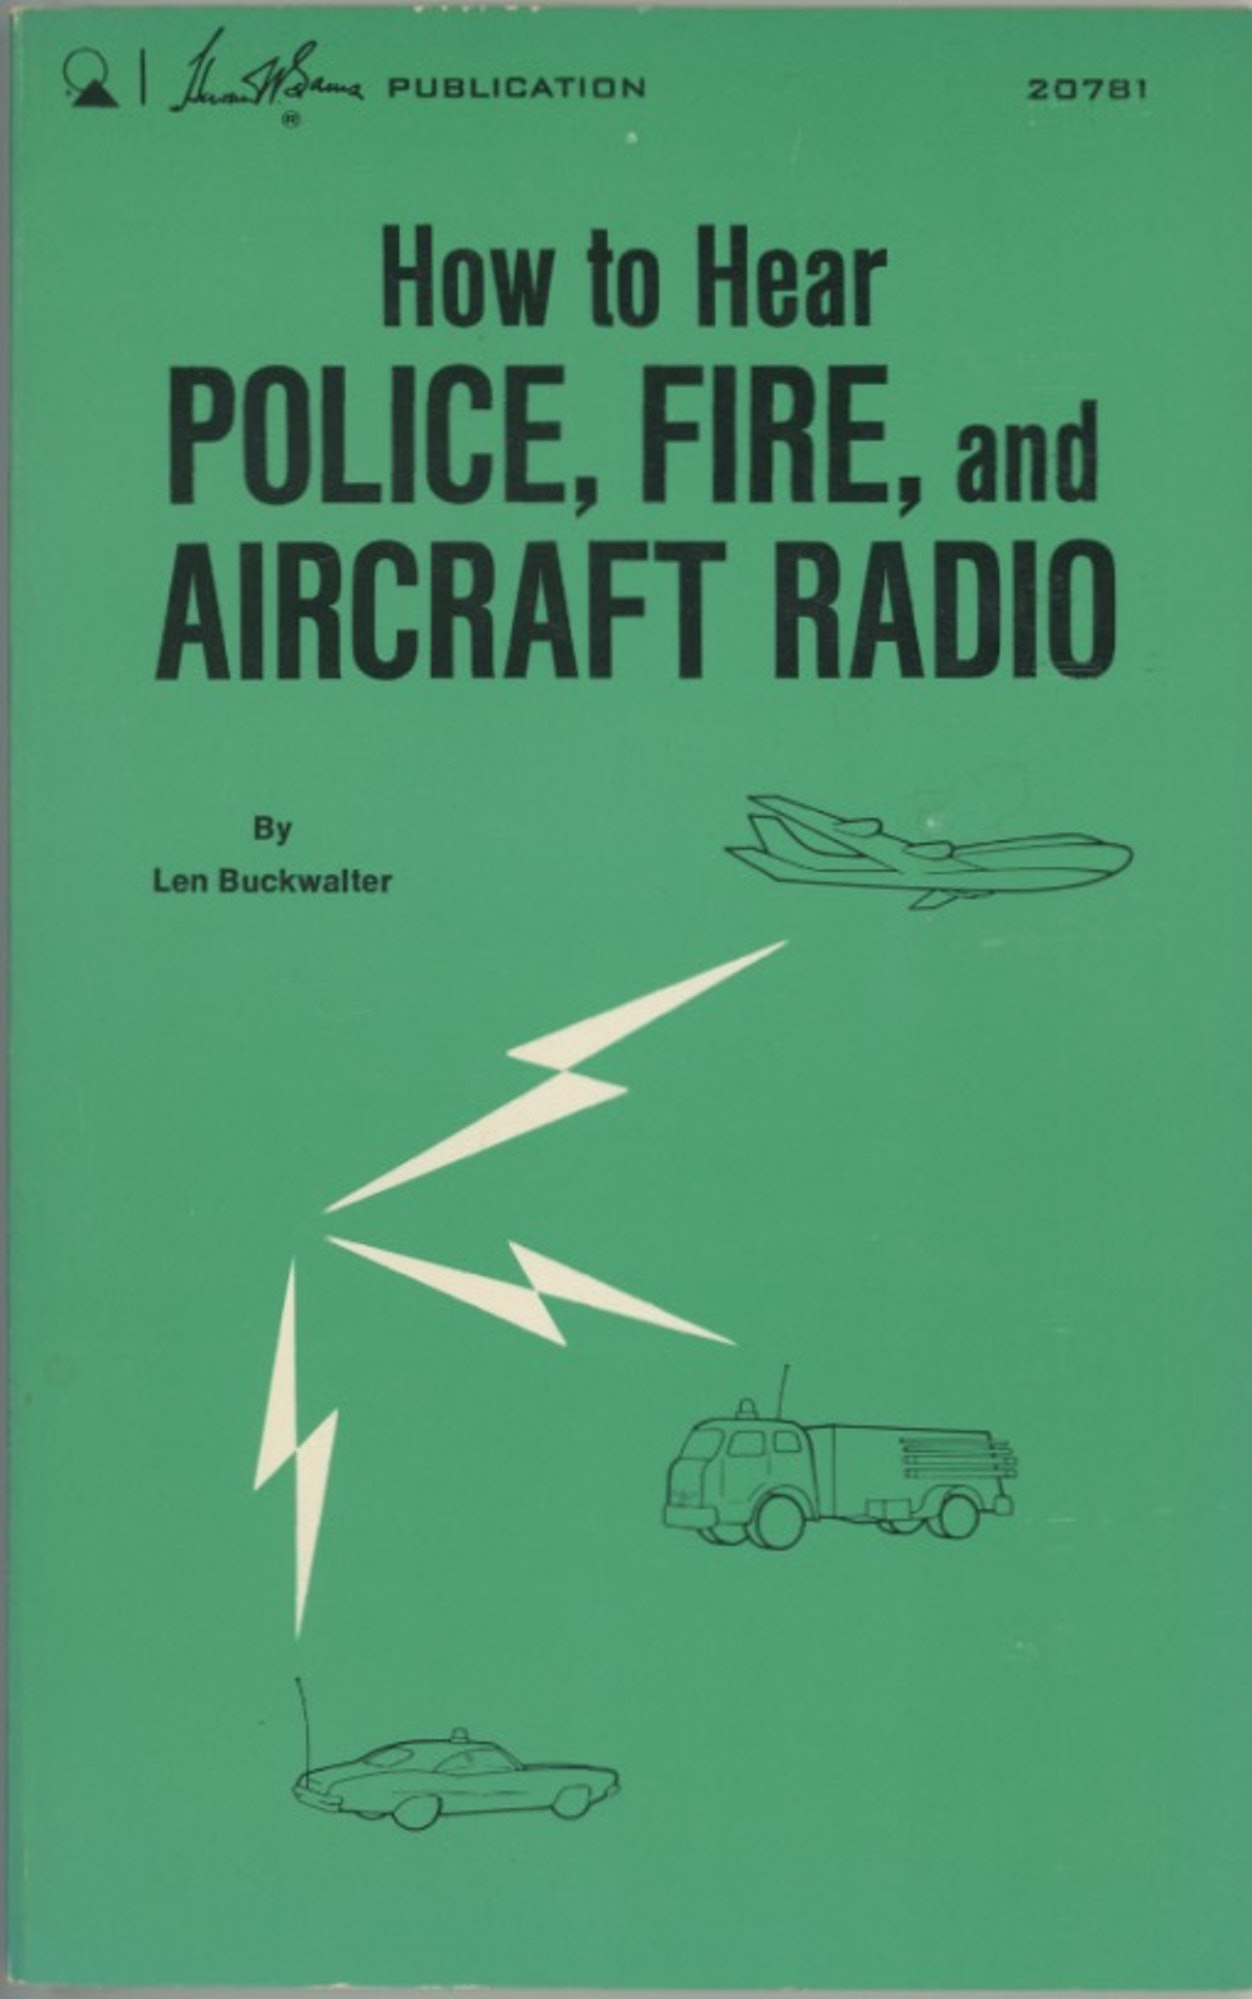 How to Hear Police, Fire and Aircraft Radio